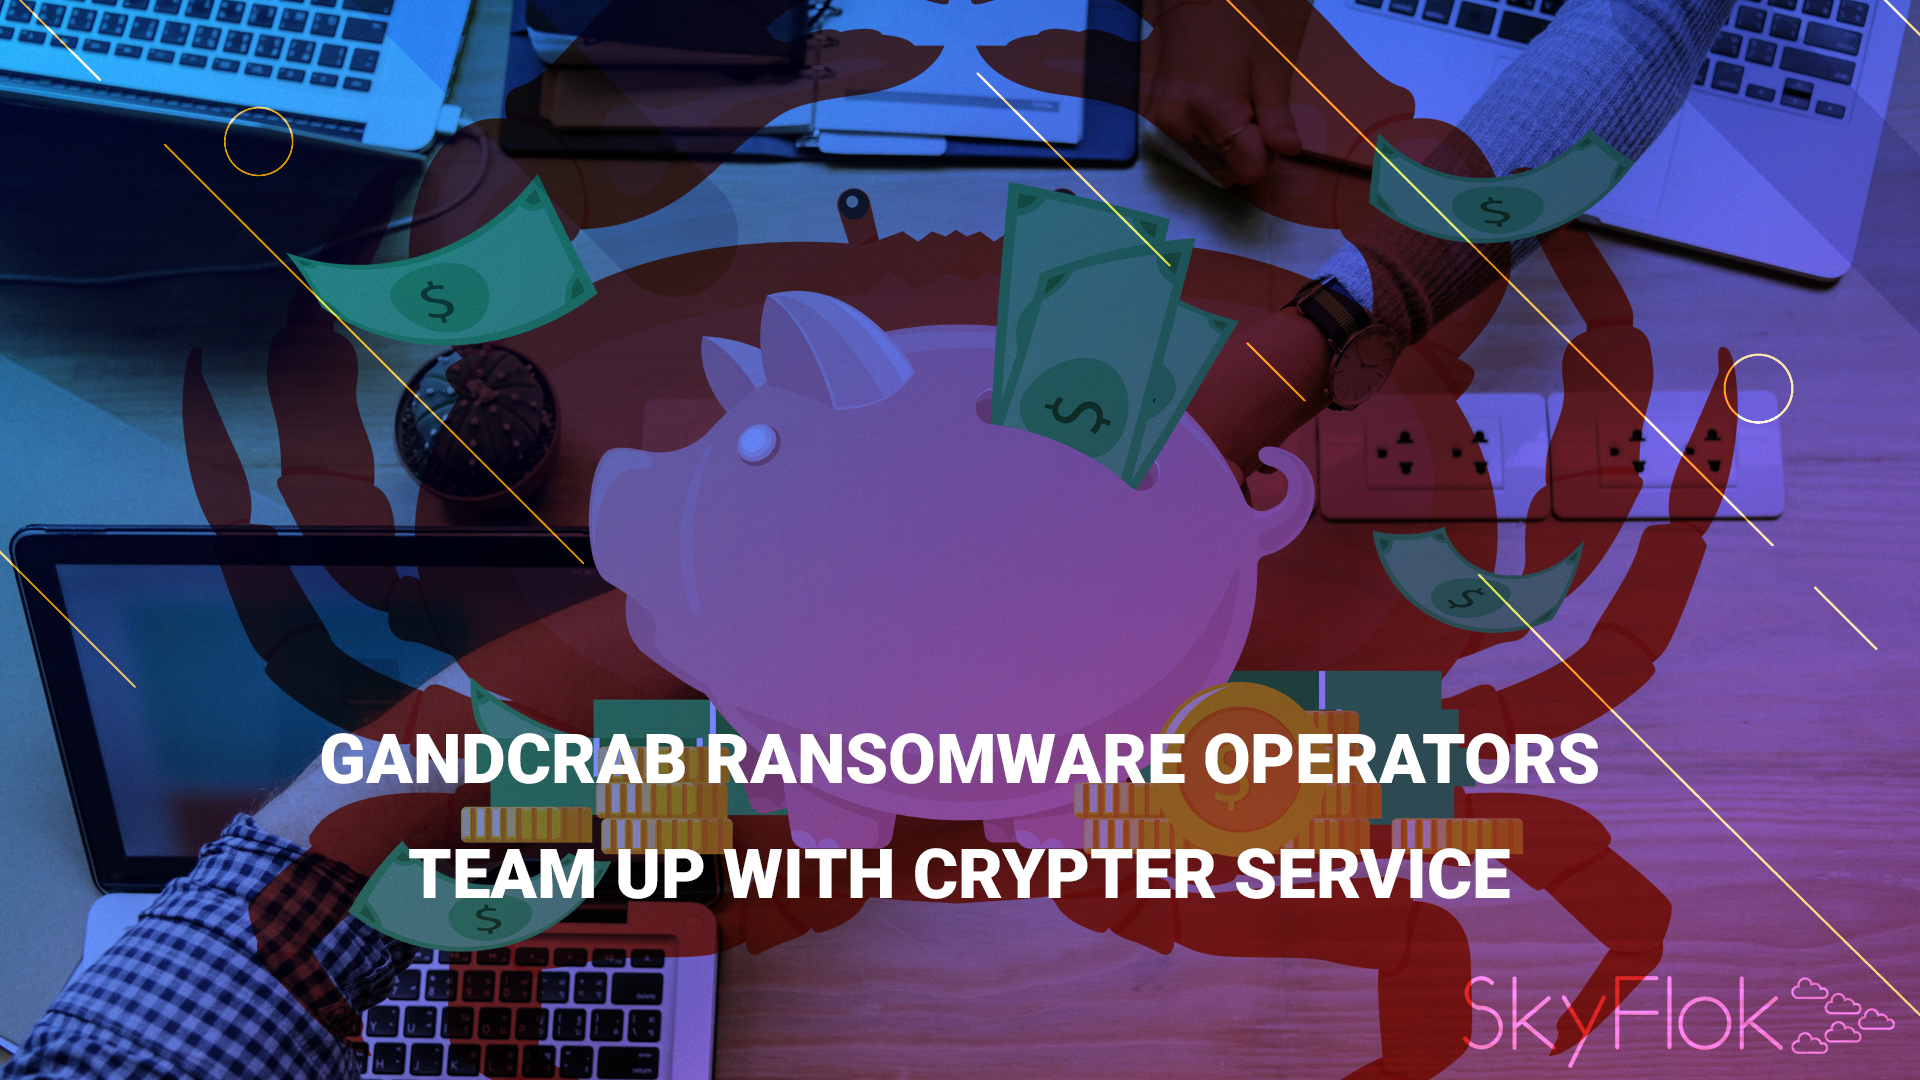 GandCrab ransomware operators team up with crypter service